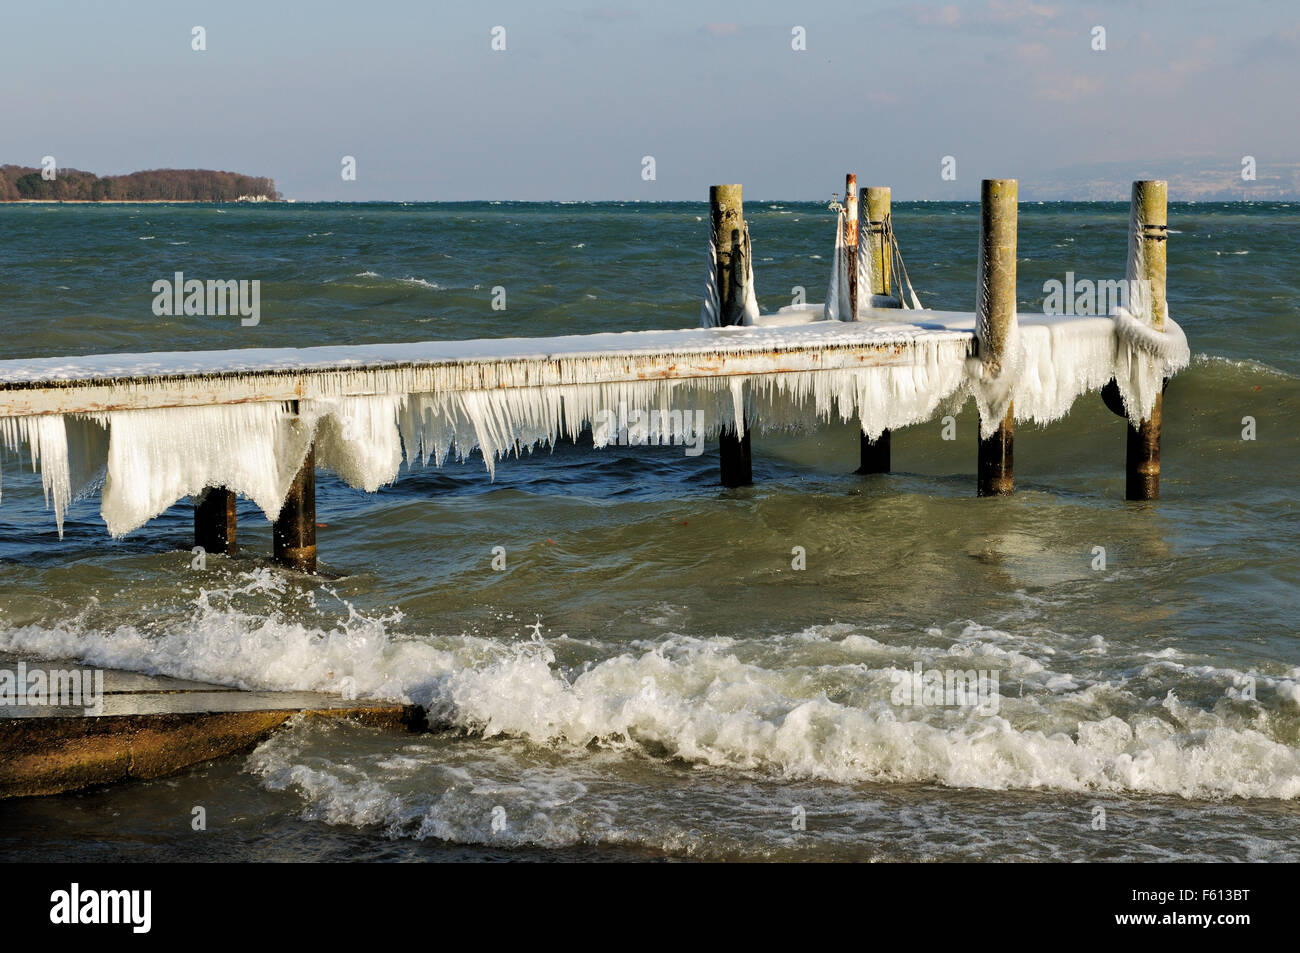 Icy pier during the February 2012 European cold wave in Nyon, Lake Geneva, Canton of Vaud, Switzerland - Stock Image